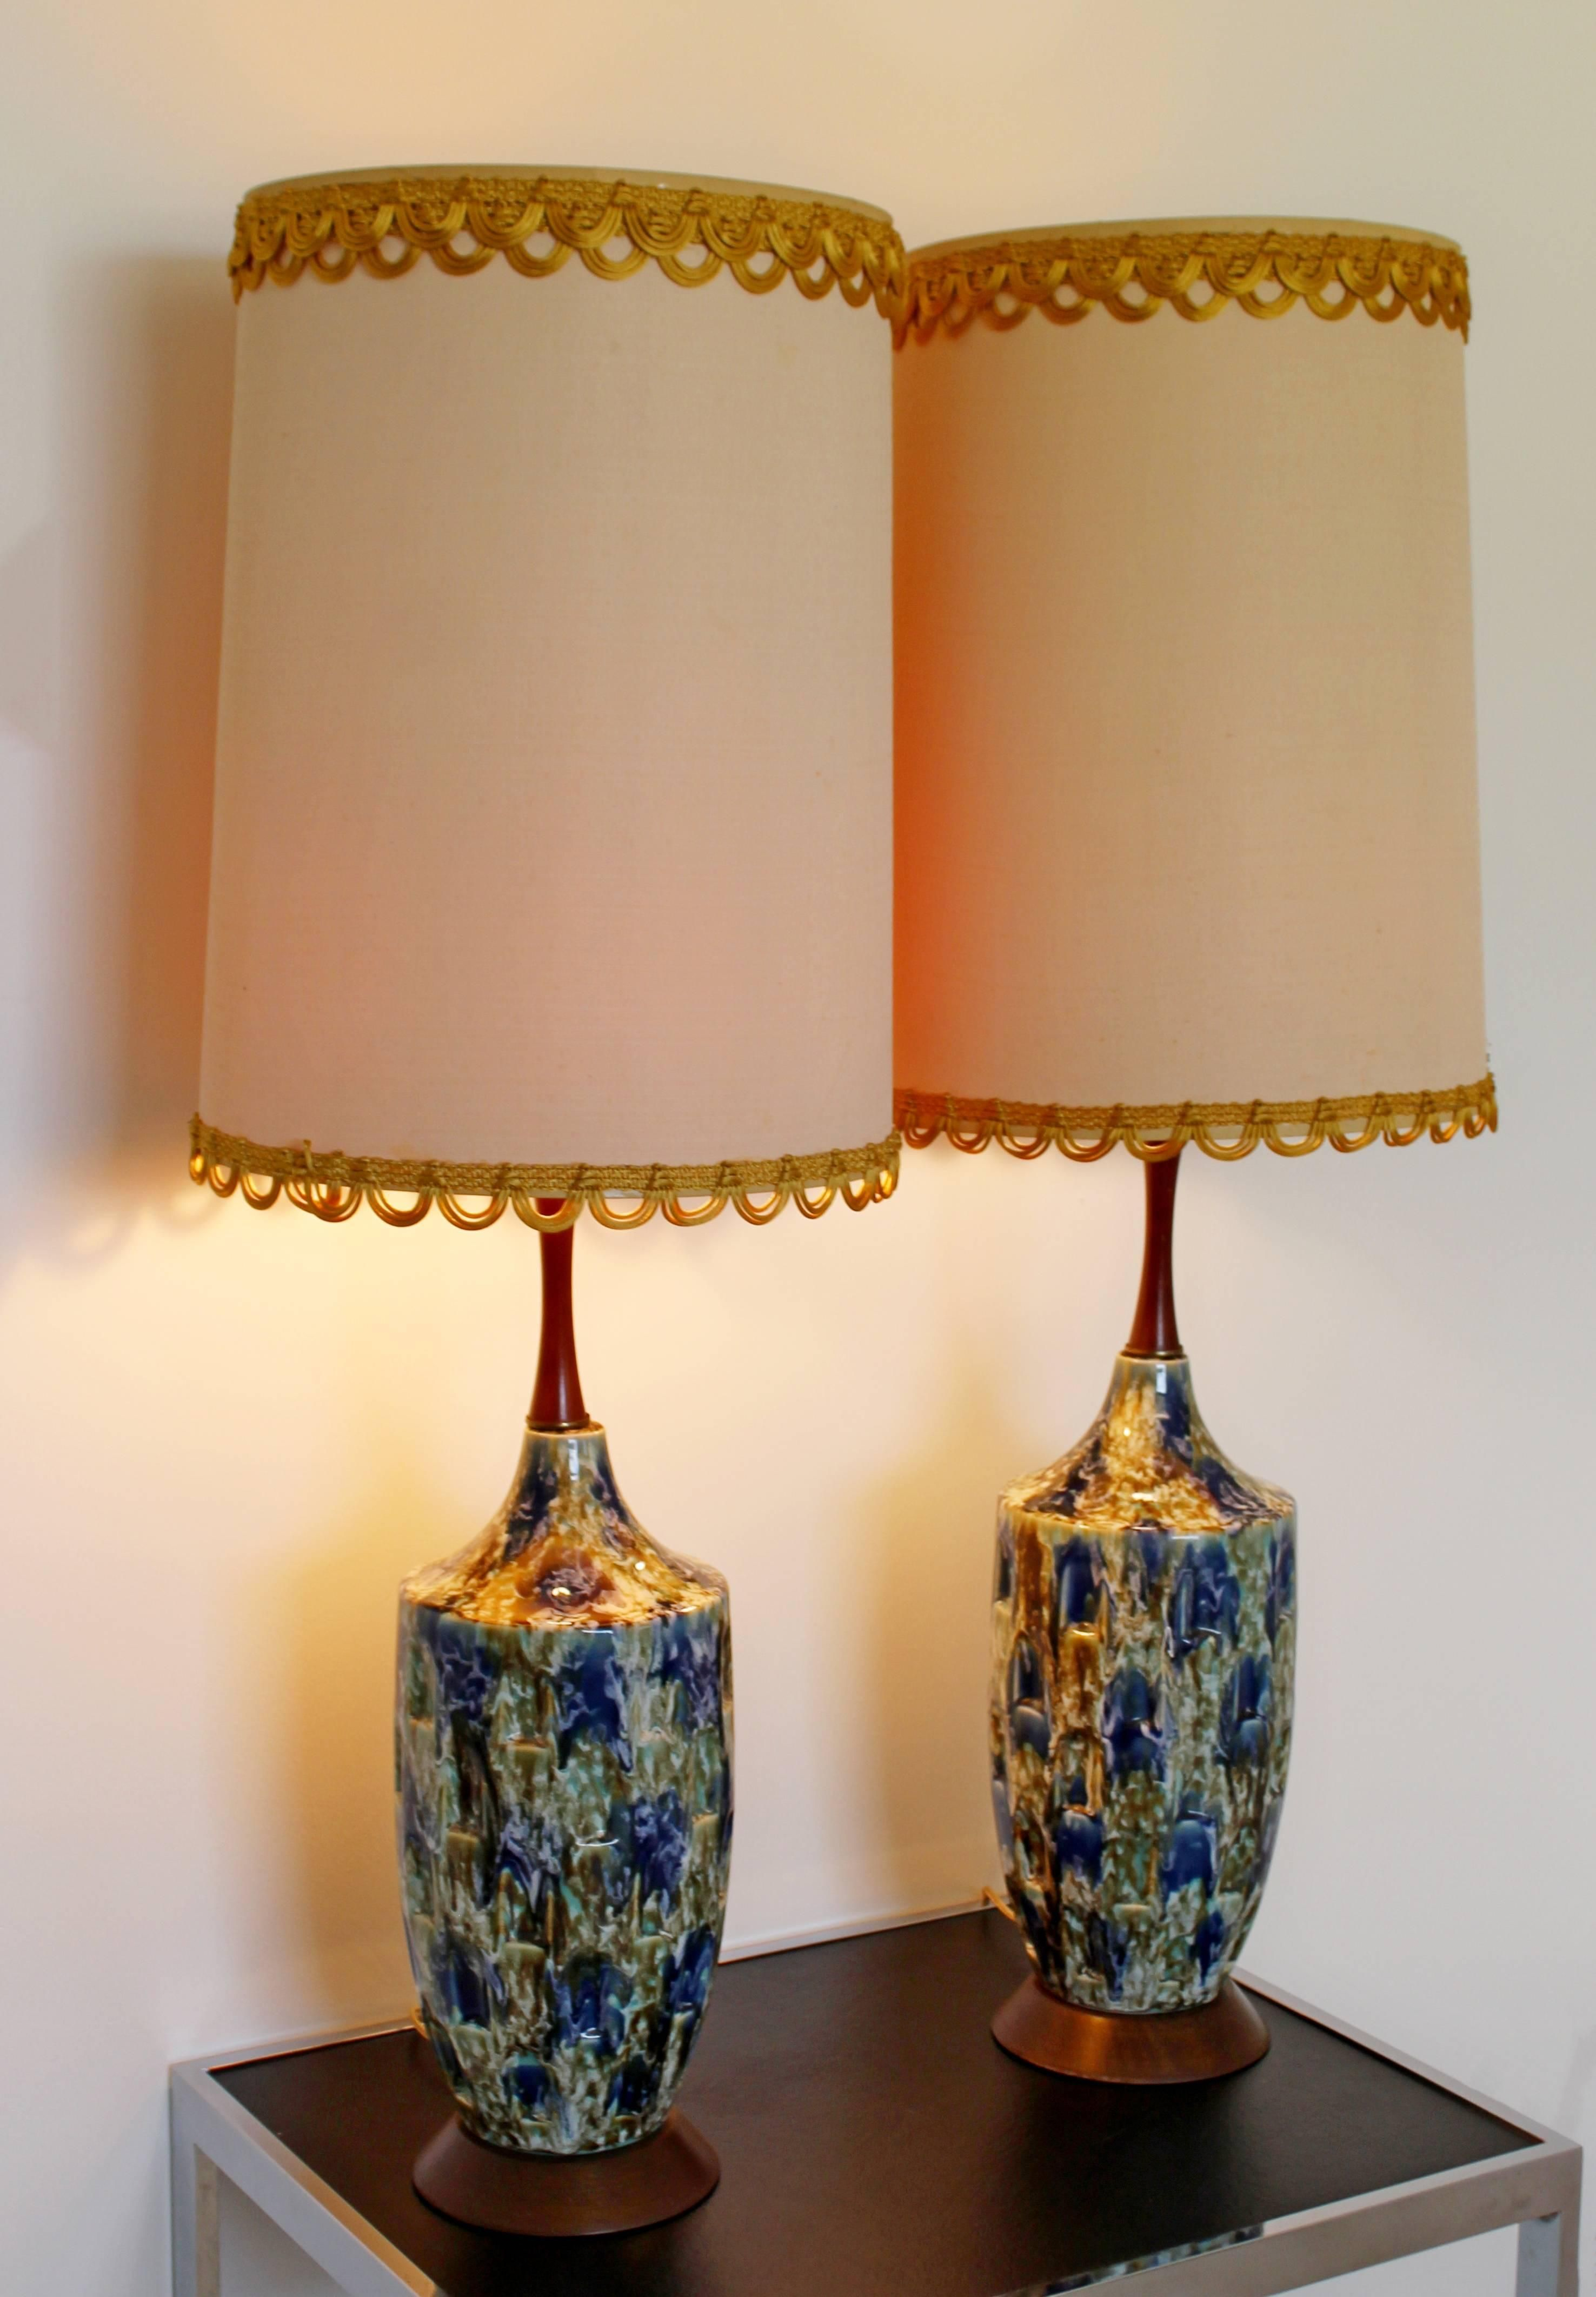 1960s Mid Century Modern Blue Drip Lava Glaze Ceramic Table Lamps A Pair Chairish Table Lamp Lamp Mid Century Lamp